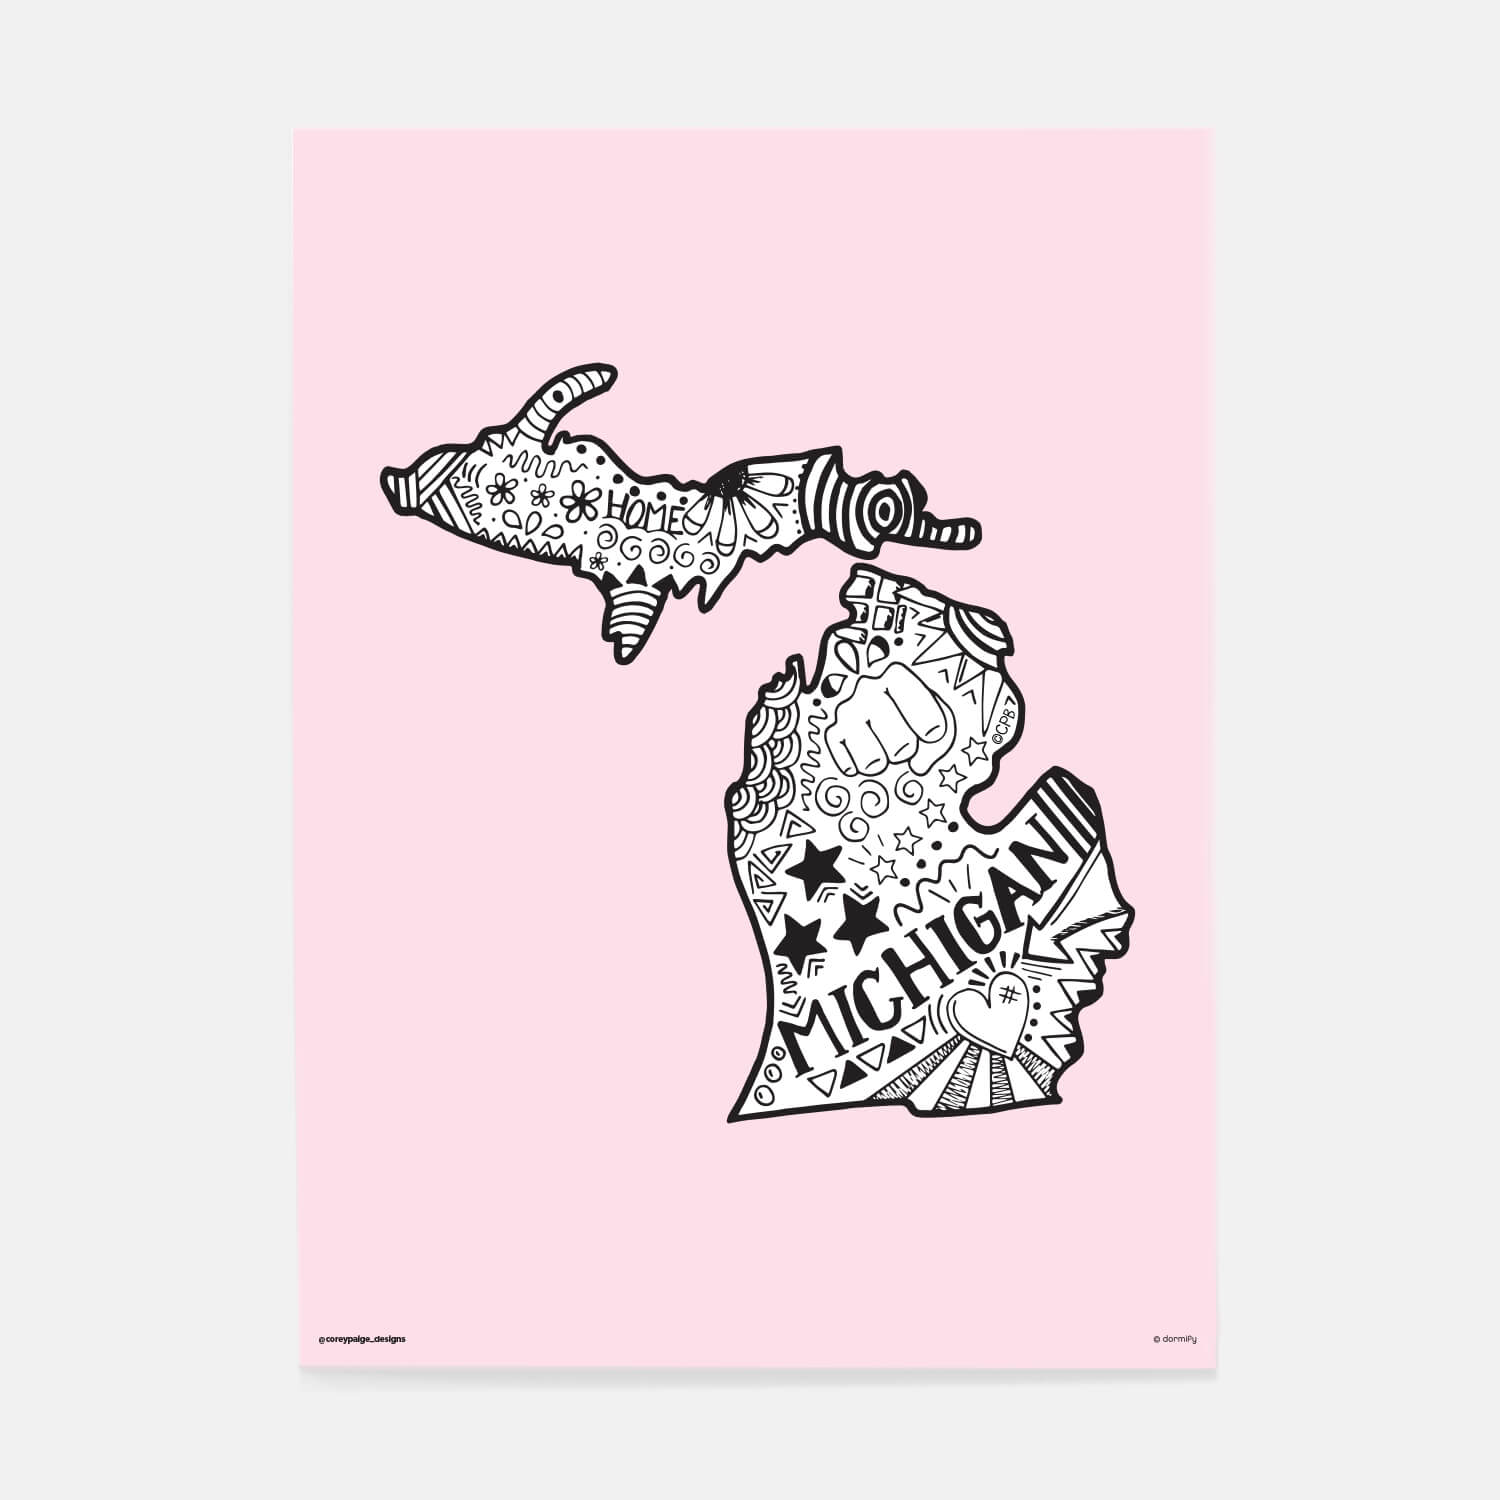 michigan state pride poster by corey paige - light pink 16x20 | wall